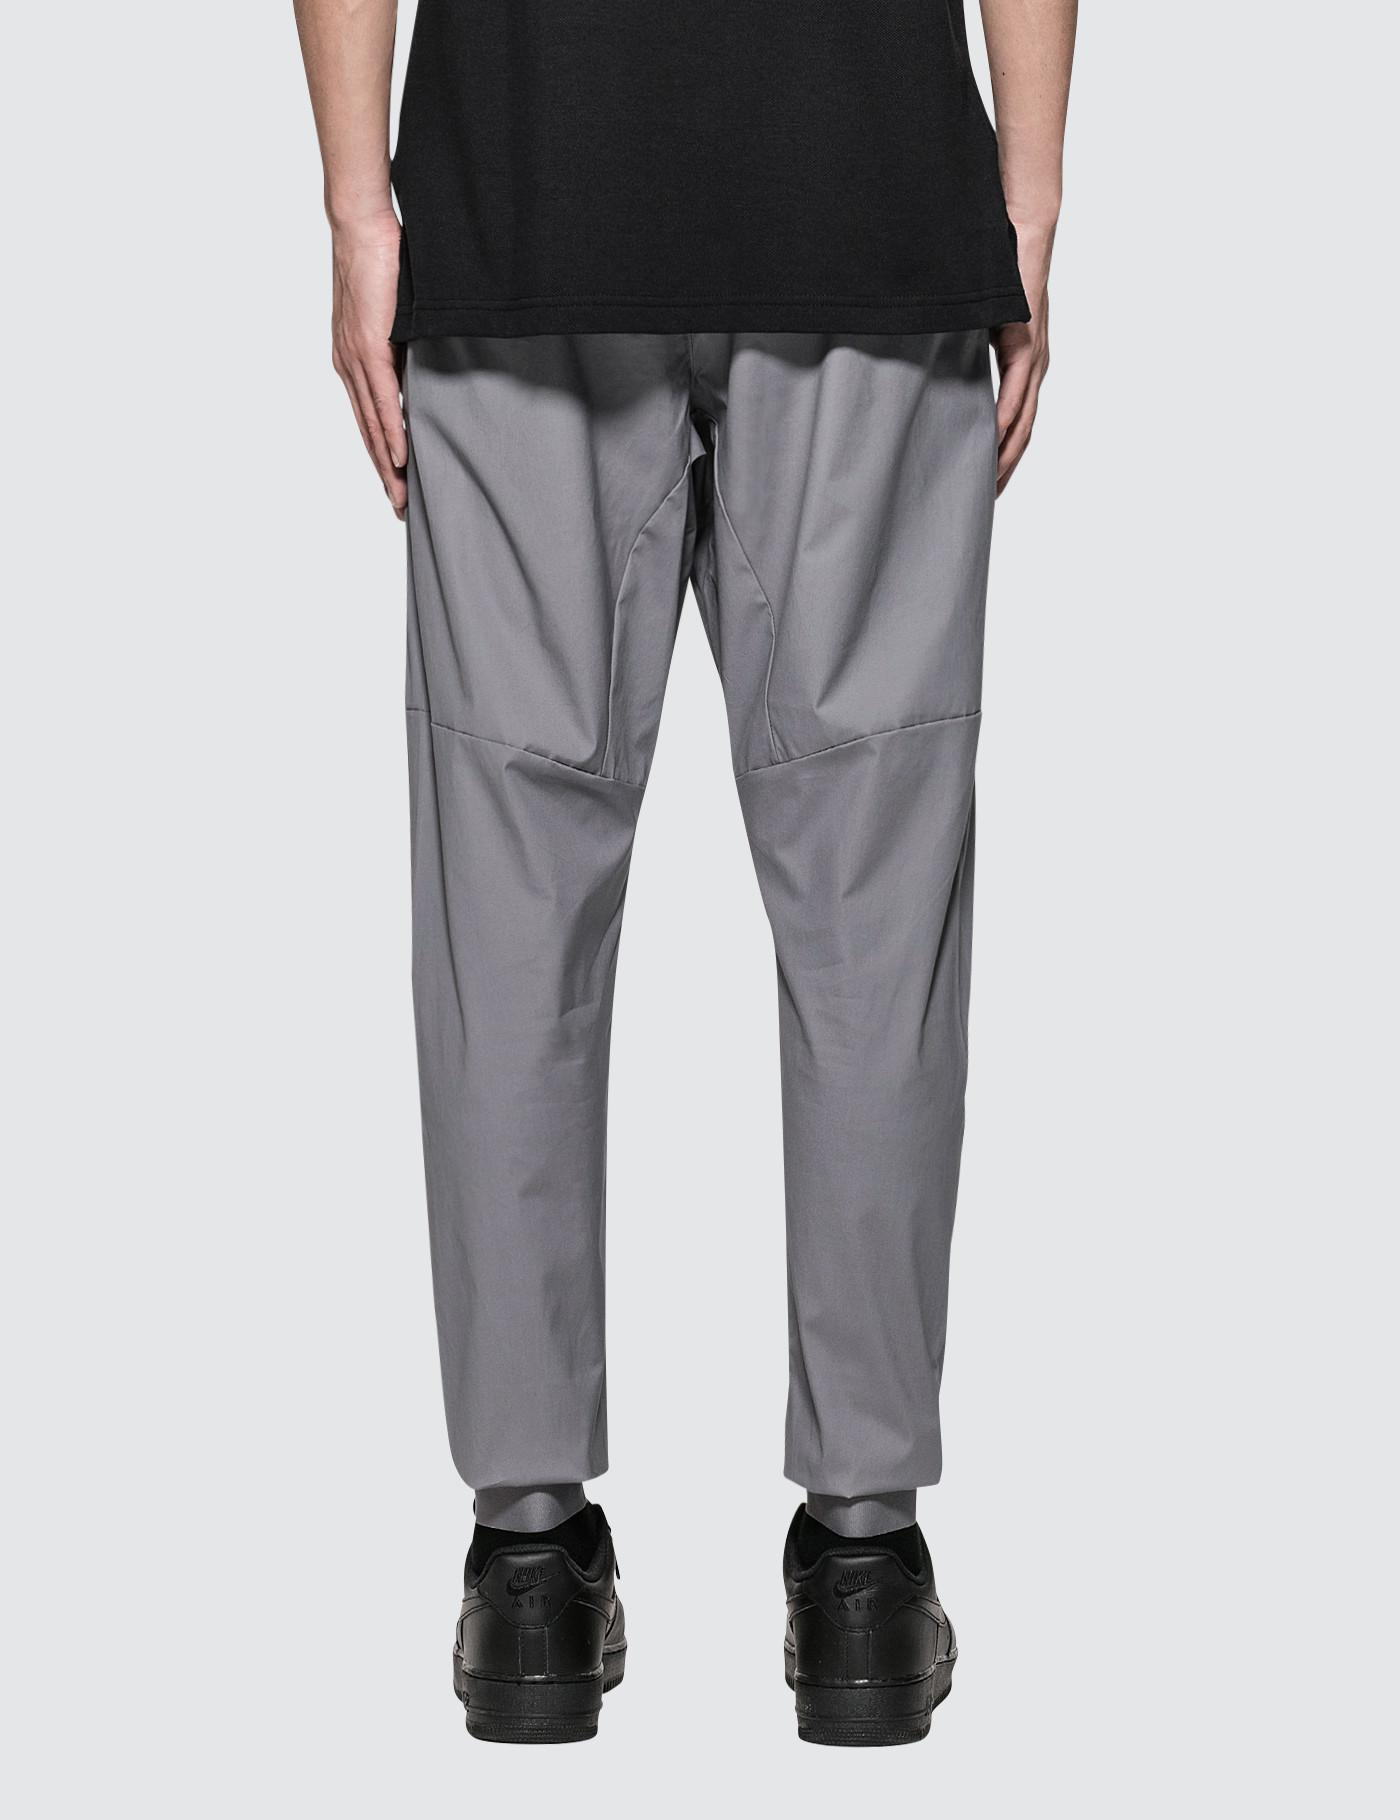 8489ef7c07816 Nike Nsw Bonded Woven Jogger in Gray for Men - Lyst